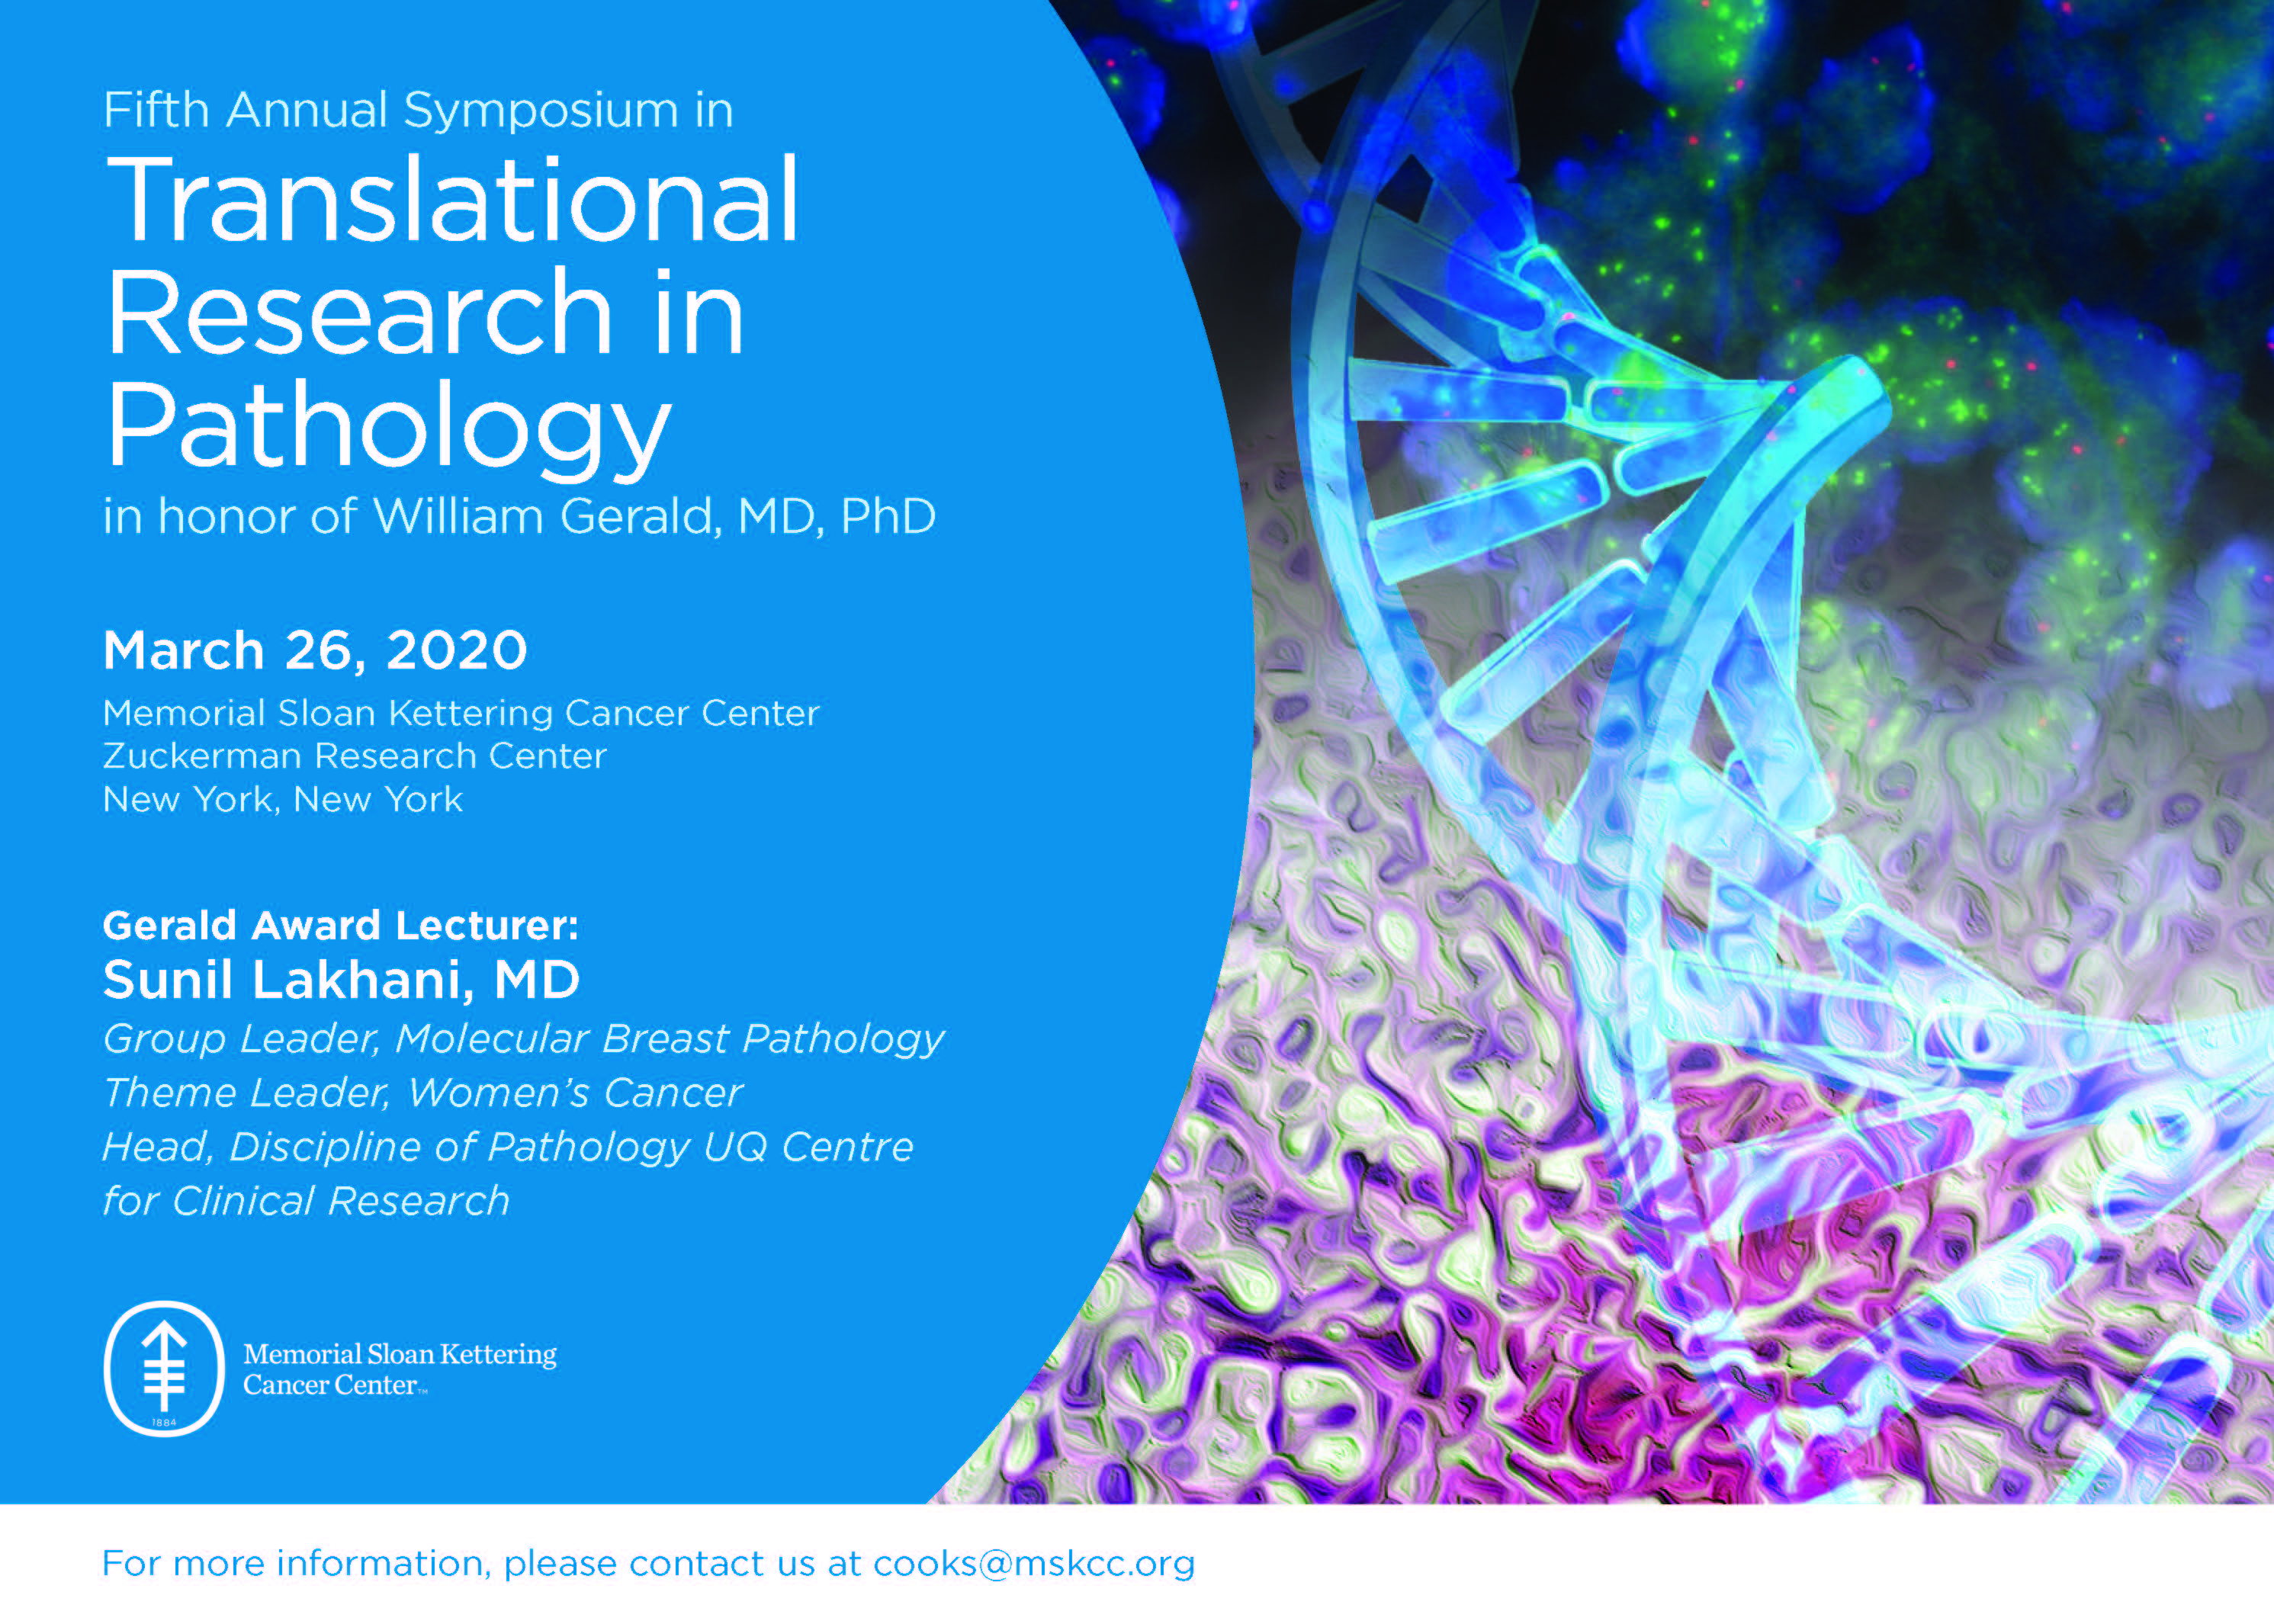 The 5th Annual Symposium in Translational Research in Pathology Banner